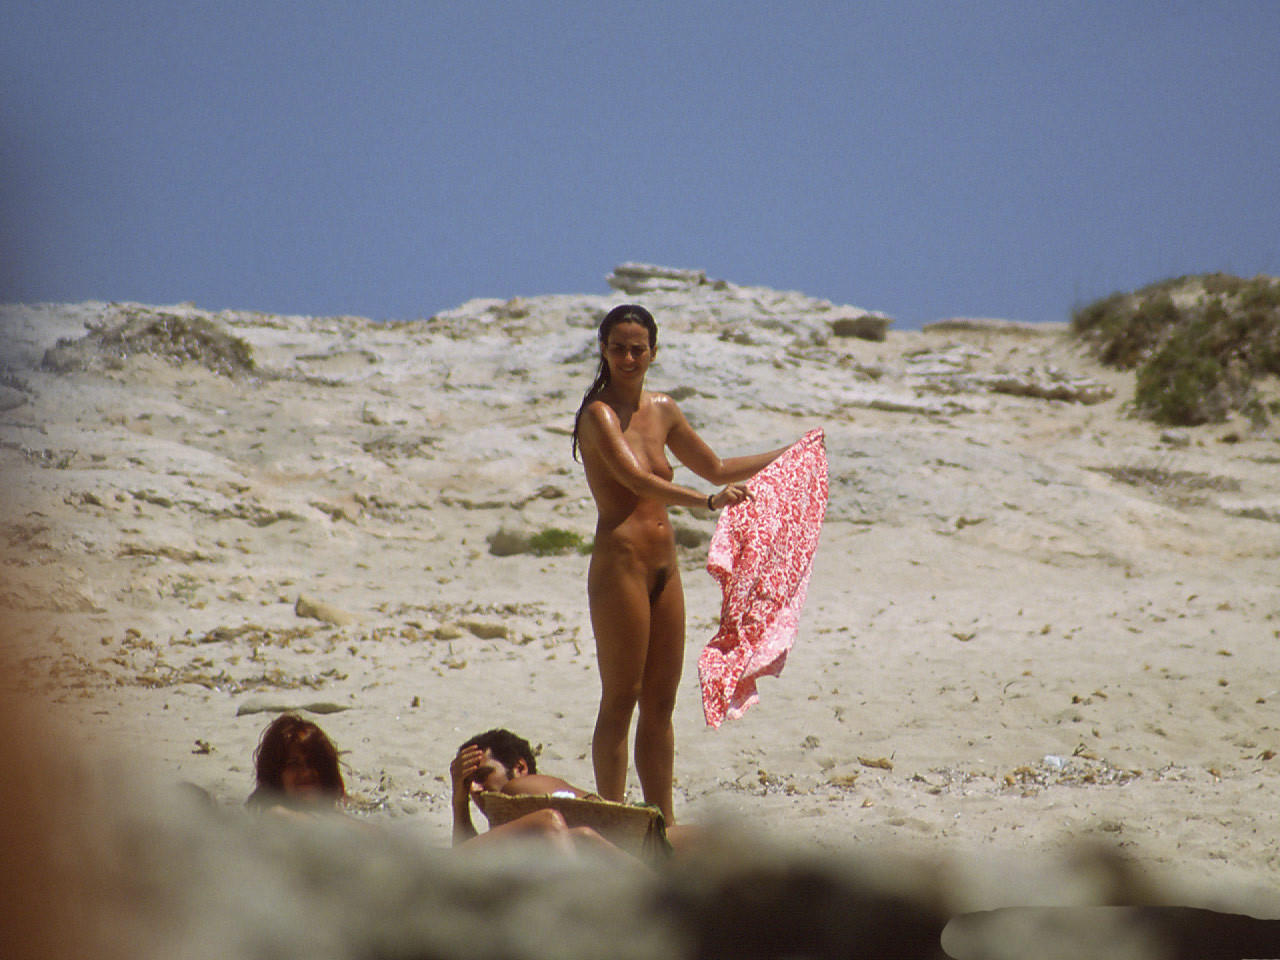 Nude on the beach and my cam caught her